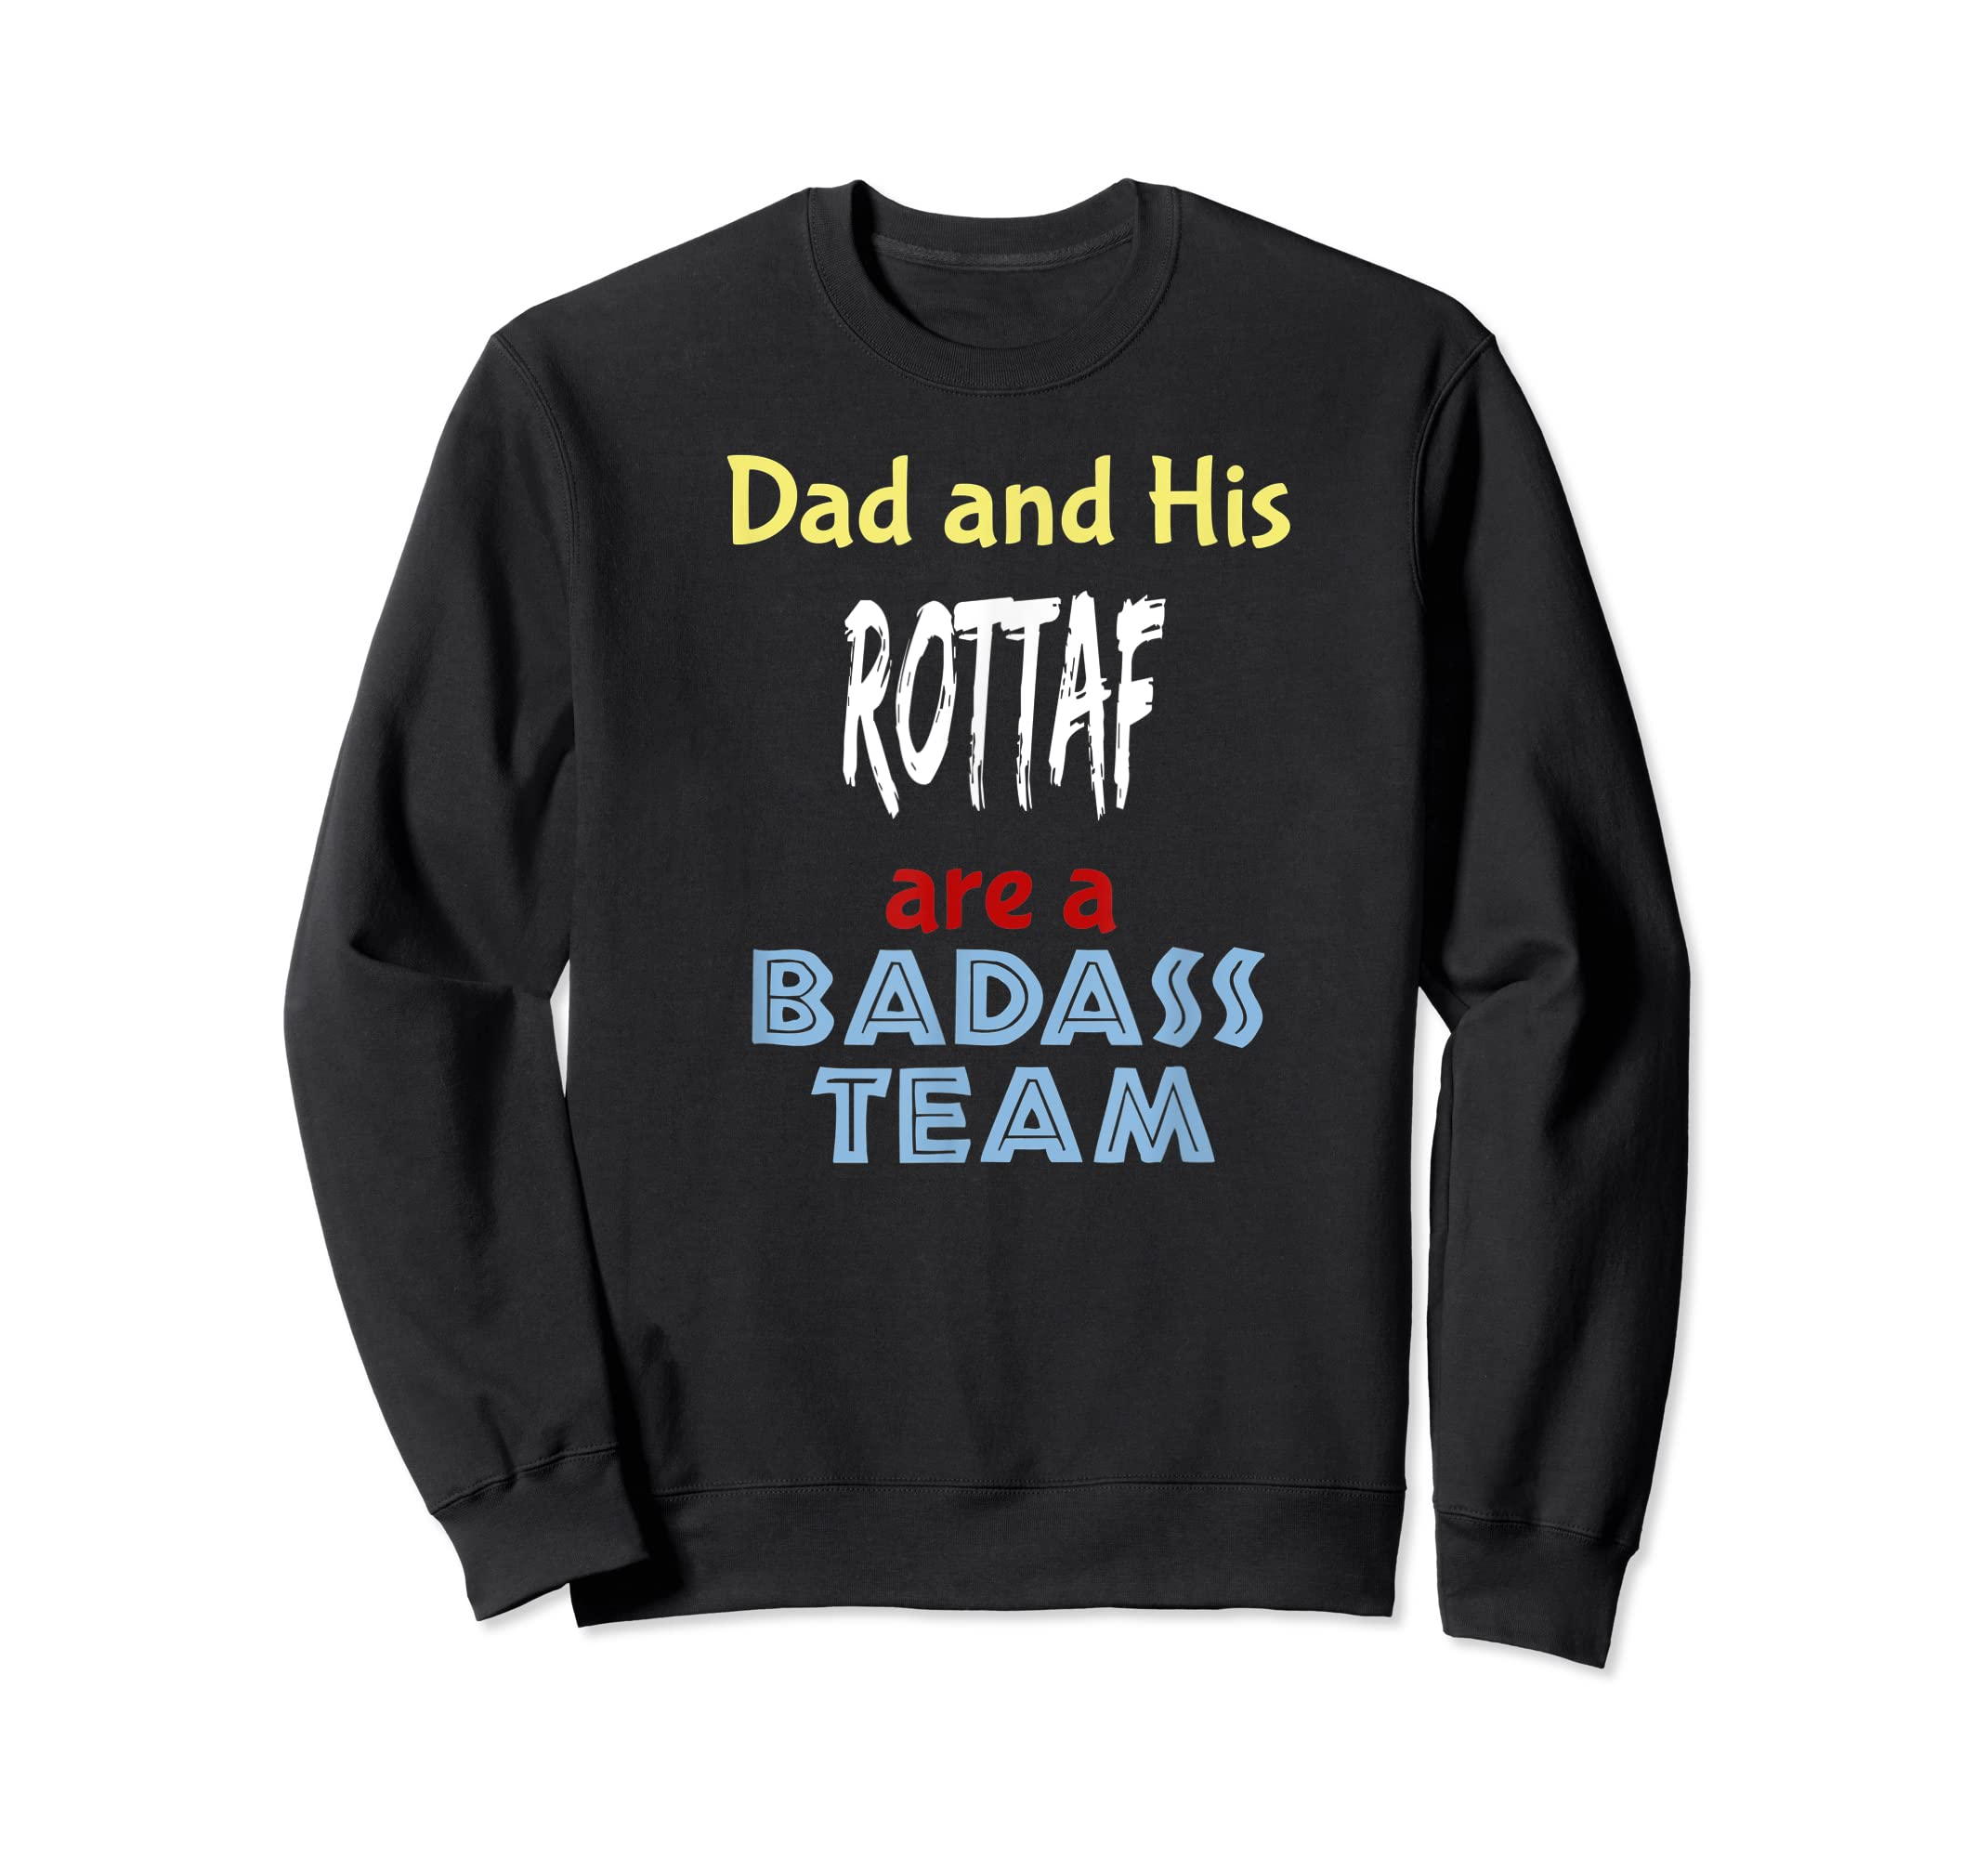 Mens Rottaf Dog Shirt Love Rottweiler + Afghan Hound =  T-Shirt-Sweatshirt-Black